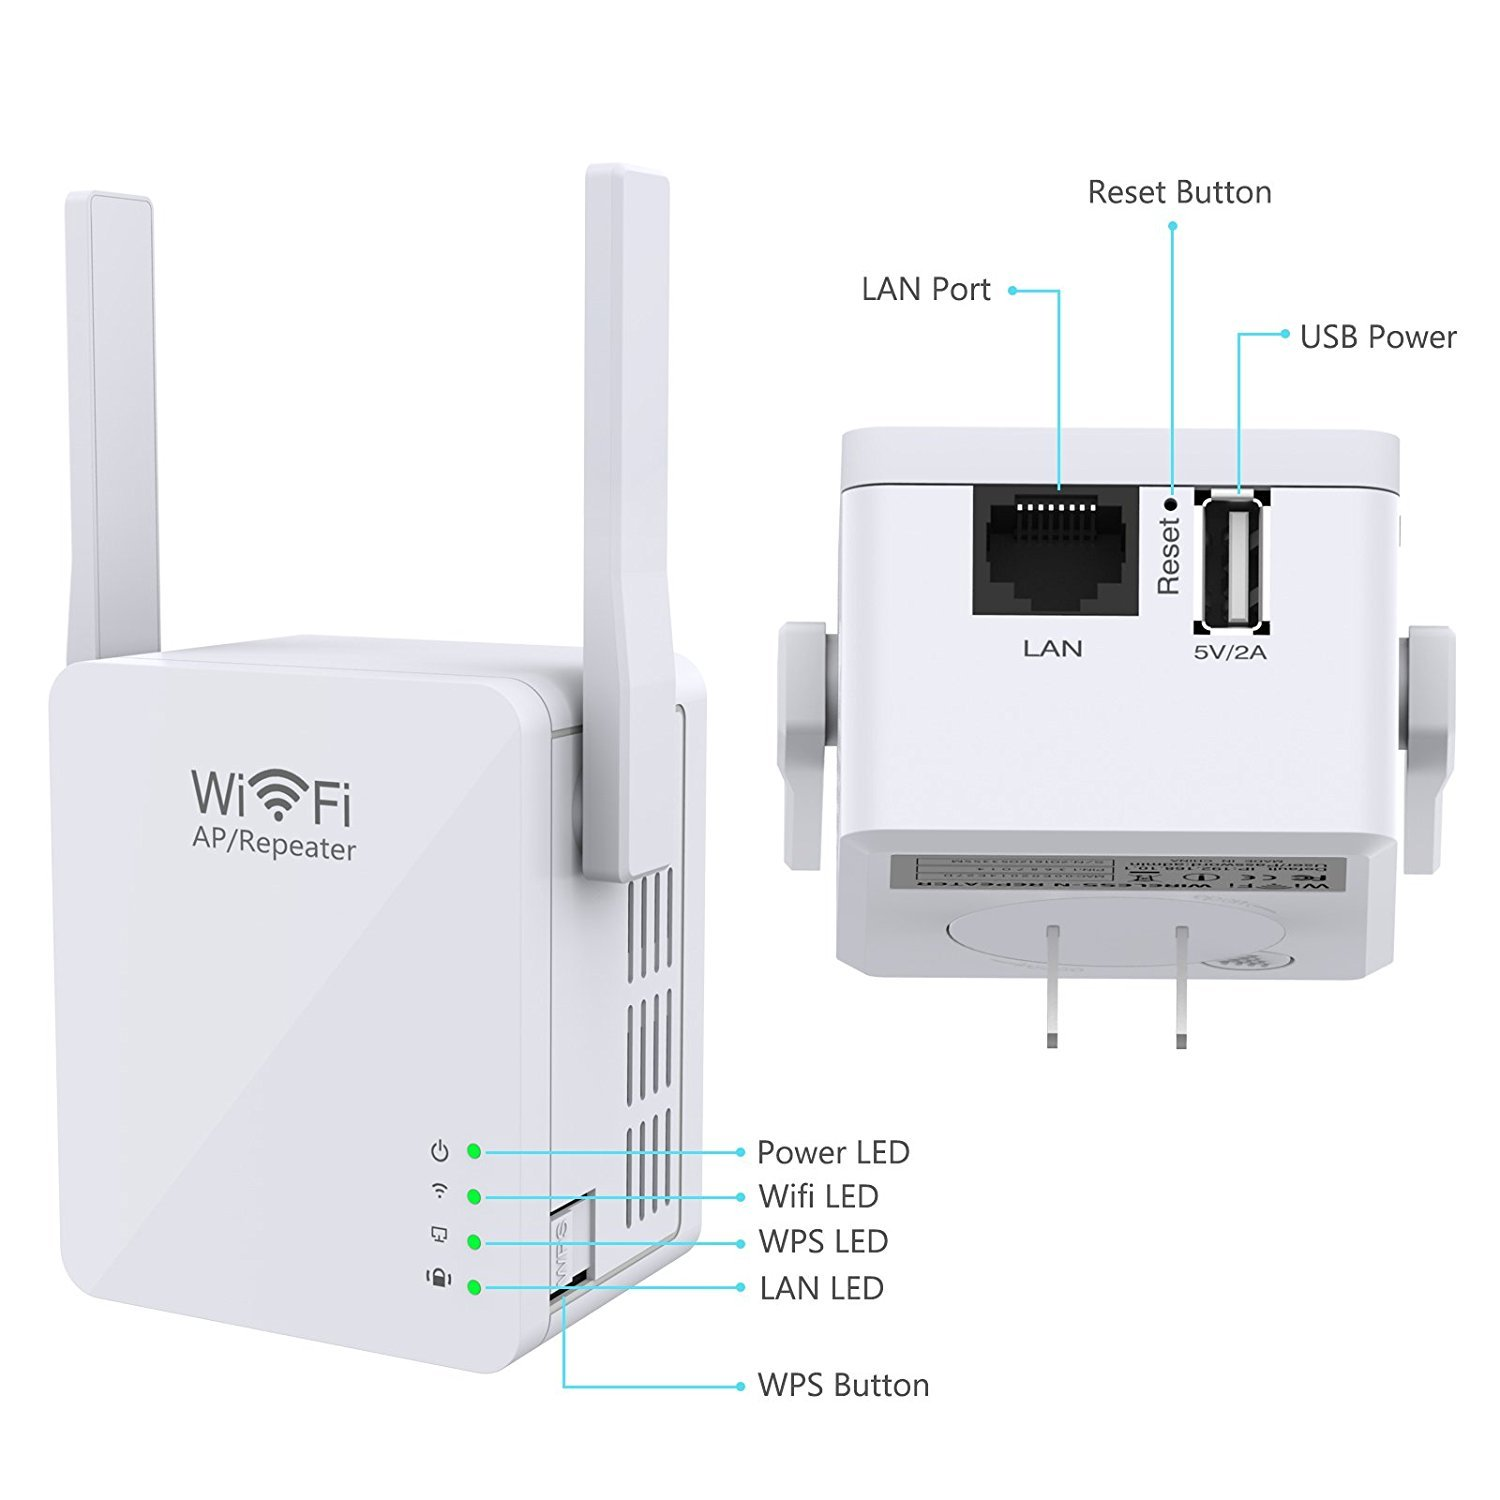 E Sports Wi Fi Range Extender Access Point Mode Repeater Wifi Usb Cable With Schematic Micro Port Electronics